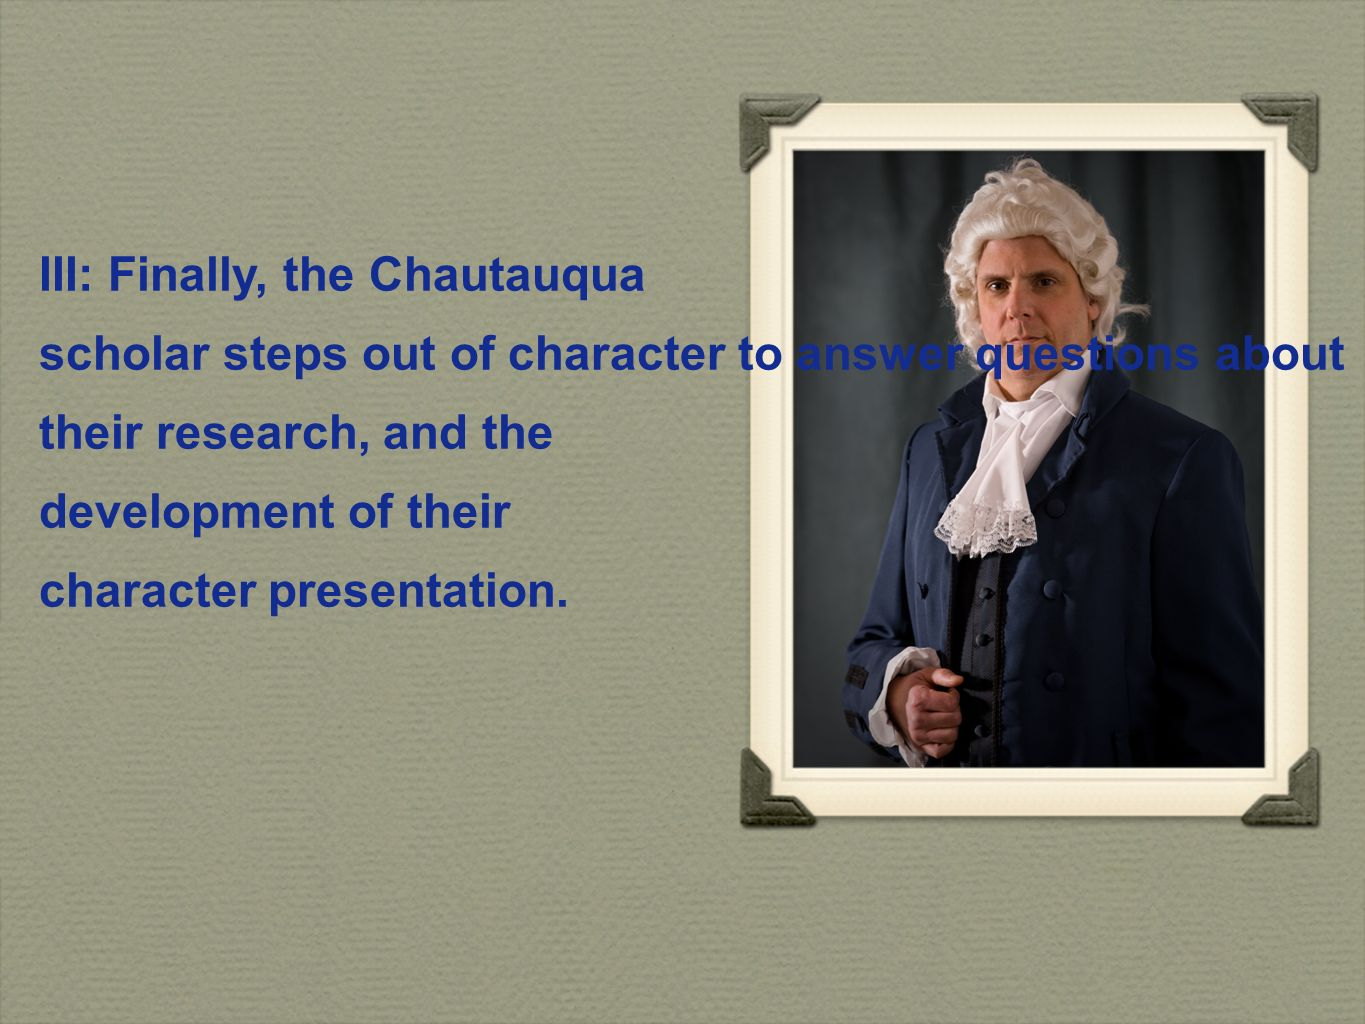 III: Finally, the Chautauqua scholar steps out of character to answer questions about their research, and the development of their character presentation.